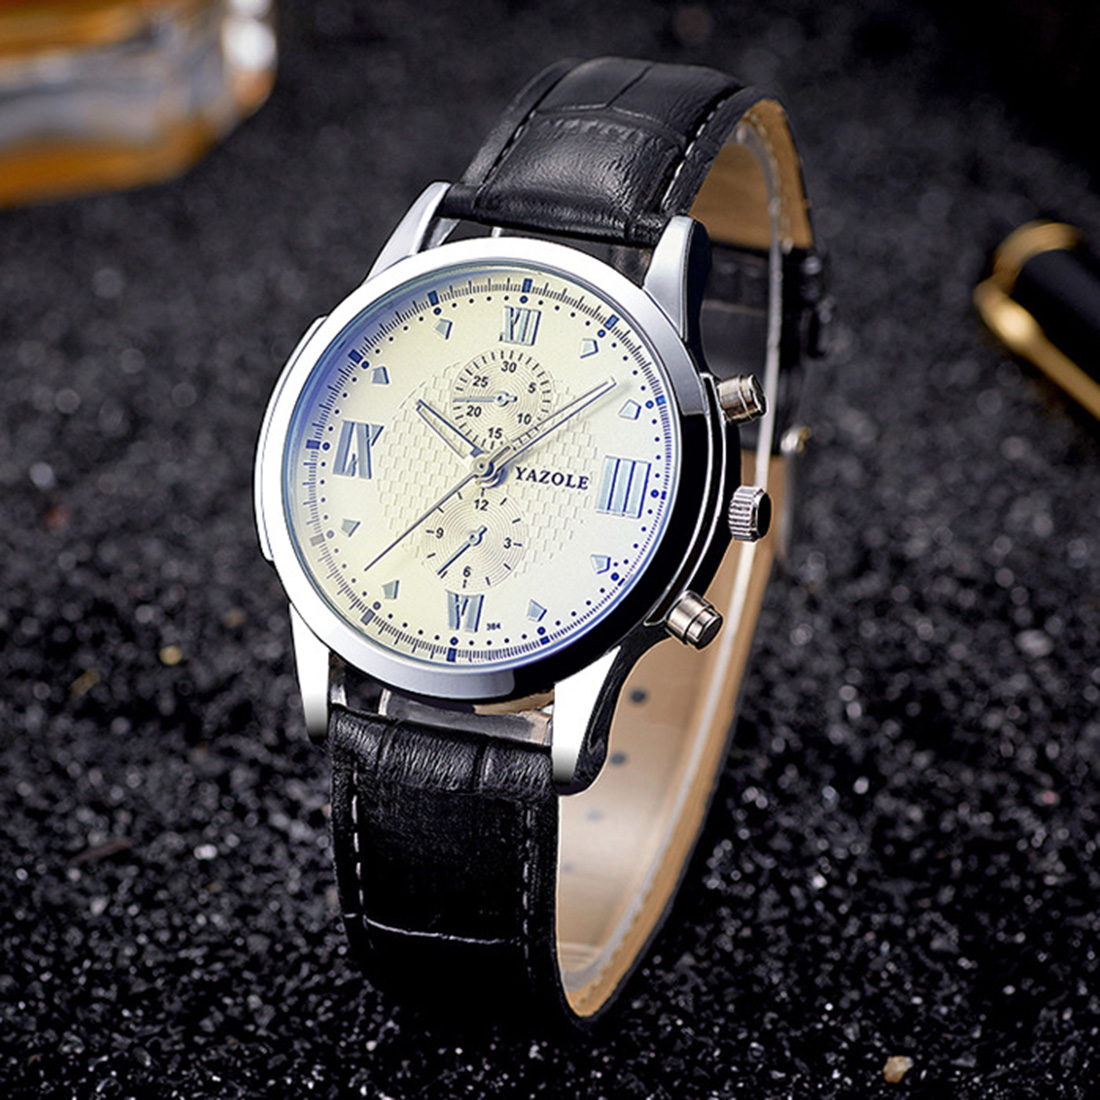 Black Watch For Men 2018 Leather Business Wristwatch Man Luxury Wathes Reloj Hombre New Fashion Father Days Gift Clock Hot Sale